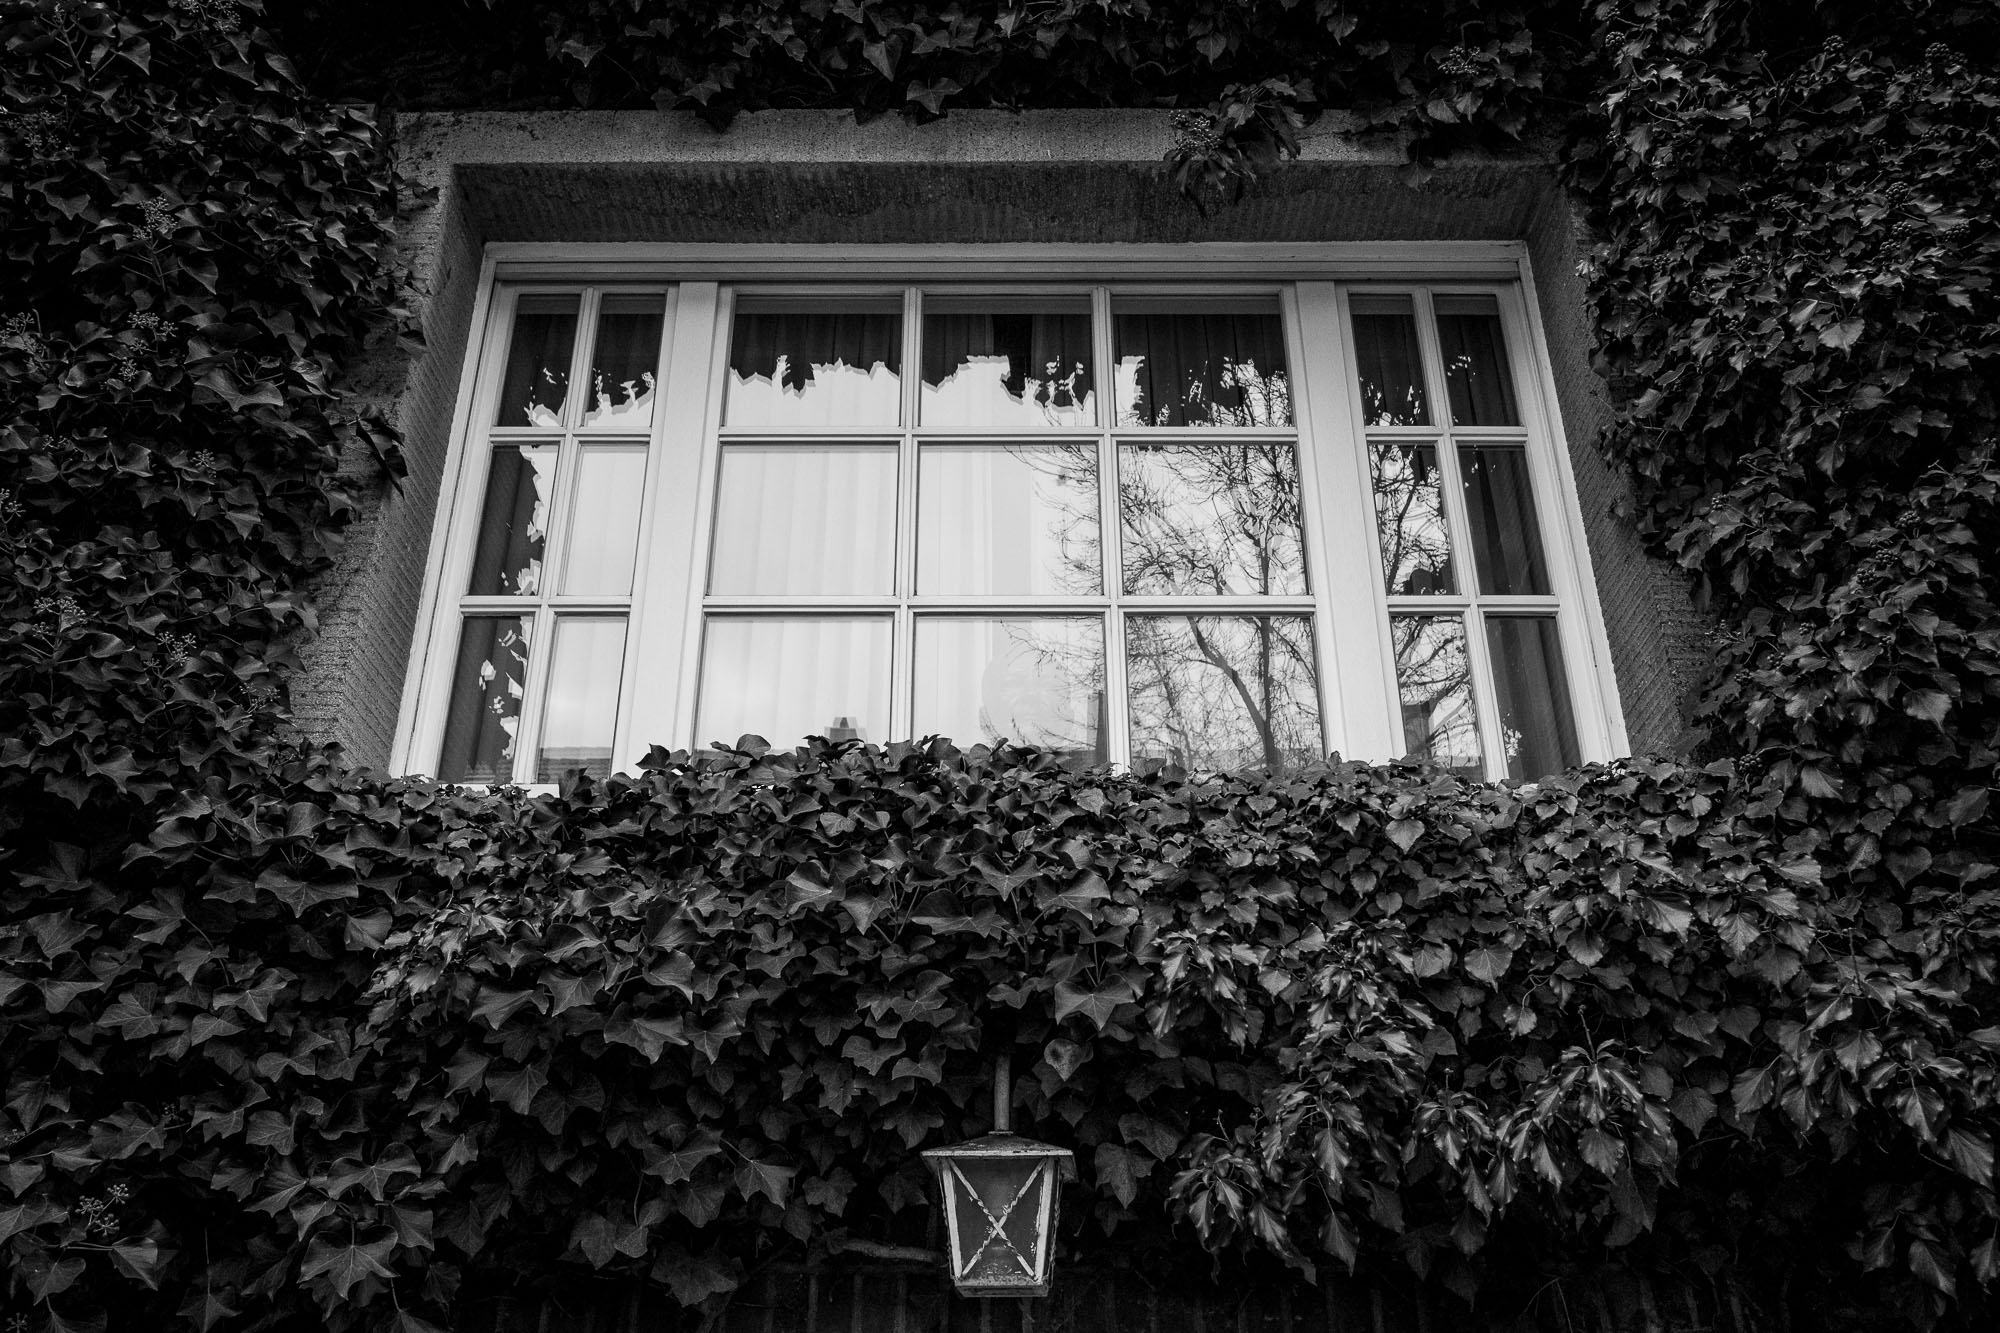 A window with ivy growing all around it